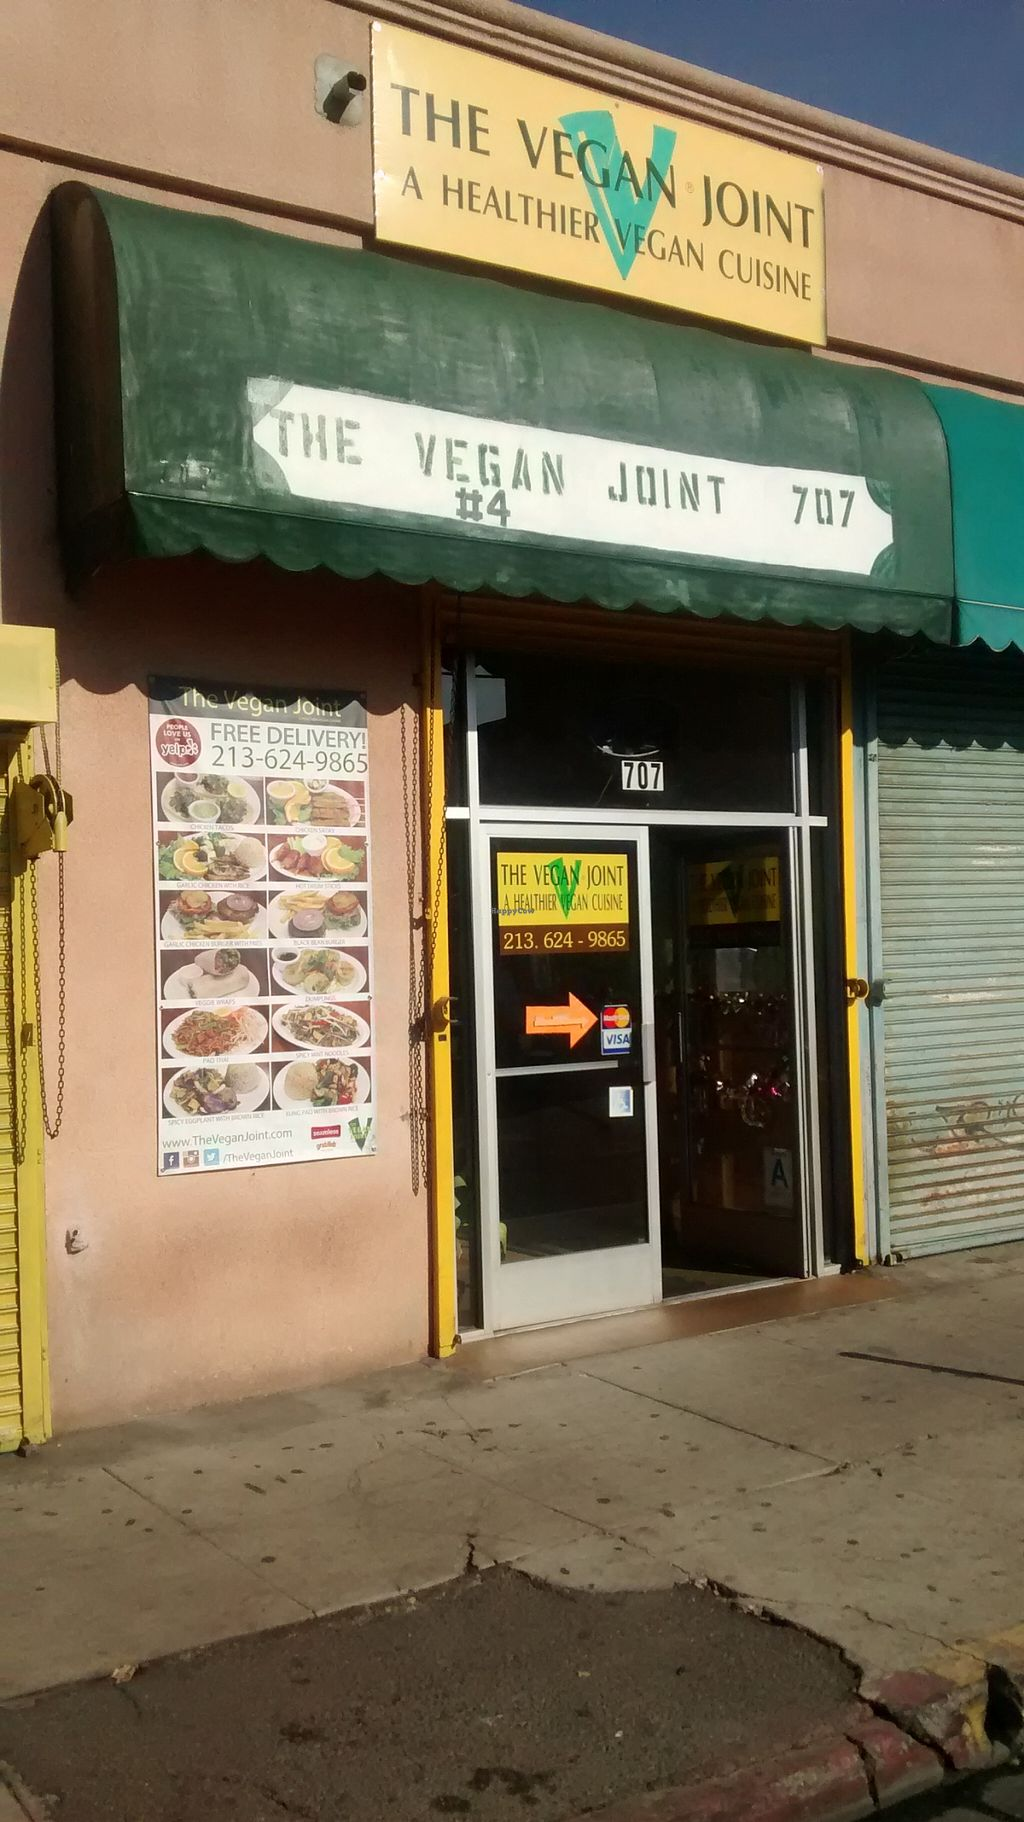 """Photo of The Vegan Joint - DTLA  by <a href=""""/members/profile/MarkTagawa"""">MarkTagawa</a> <br/>Street view on 10th <br/> December 23, 2015  - <a href='/contact/abuse/image/57238/129614'>Report</a>"""